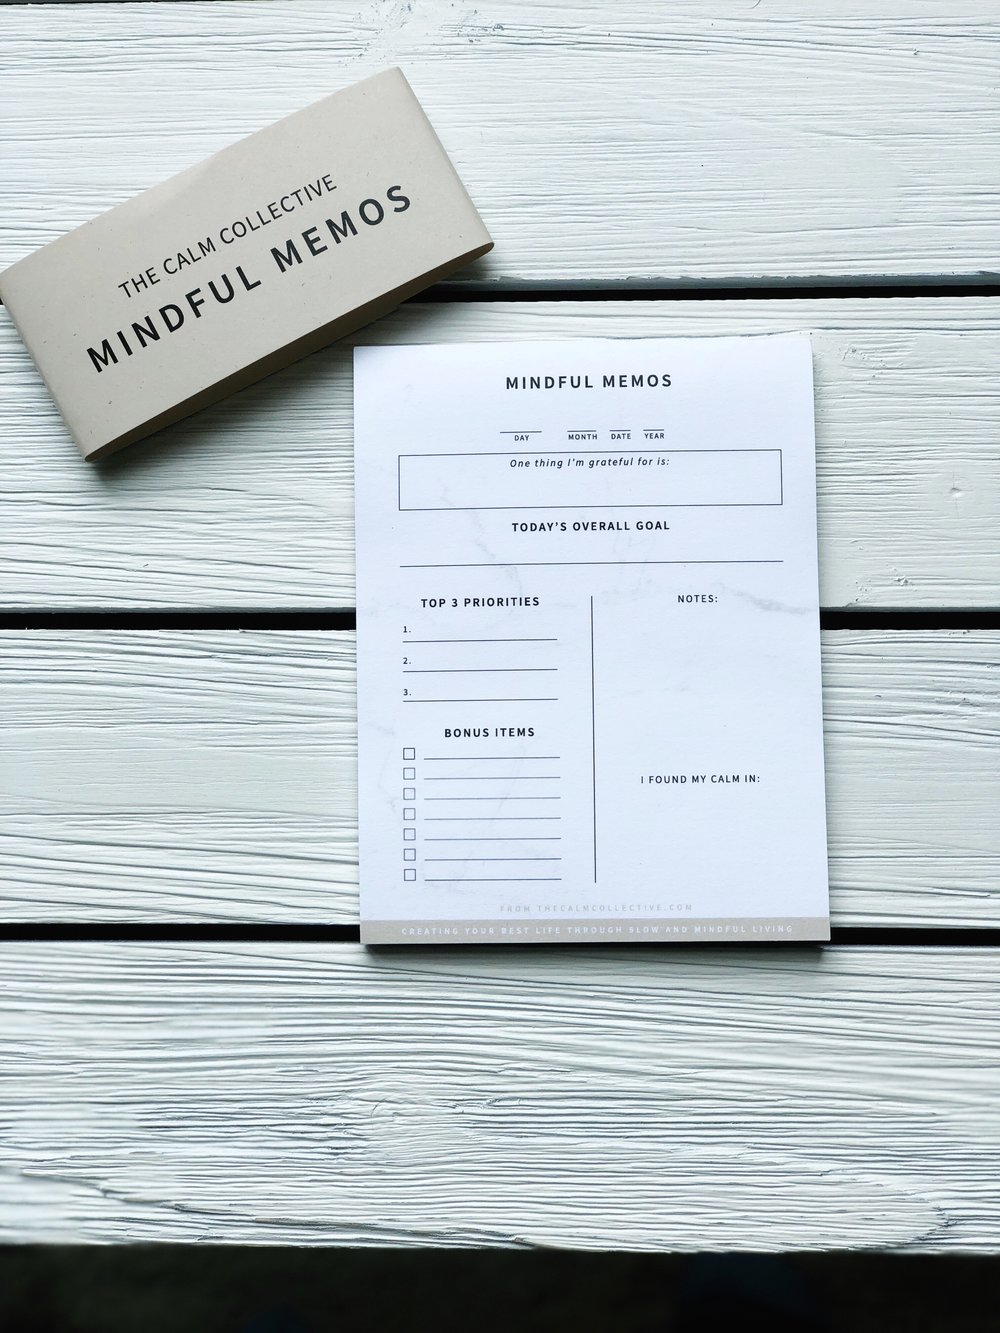 calm collective mindful memo notepad